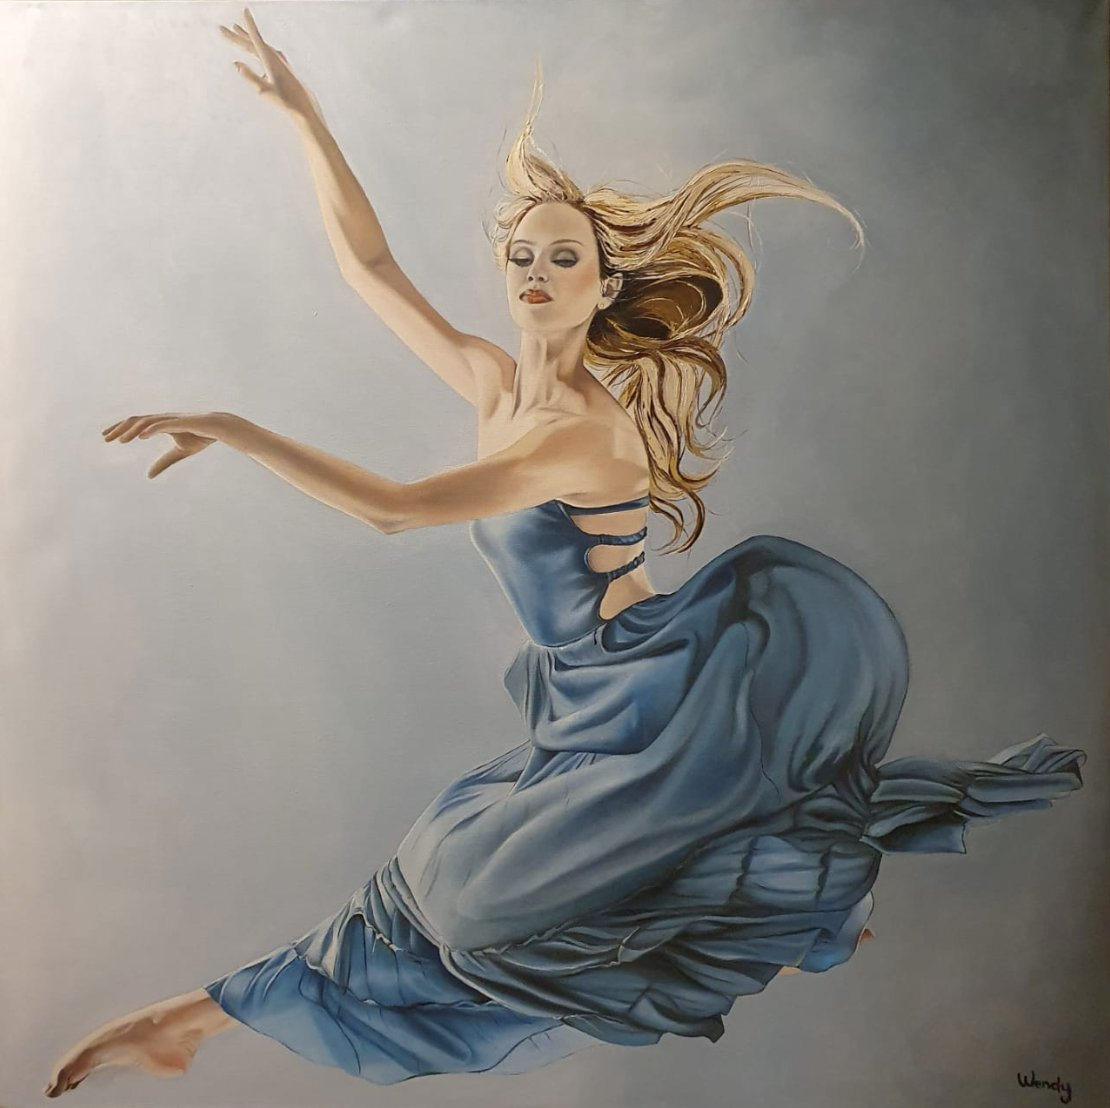 Oil on Canvas; 36 x 36 inches (92 x 92cm); Model: The gorgeous dancer Brayley Willits